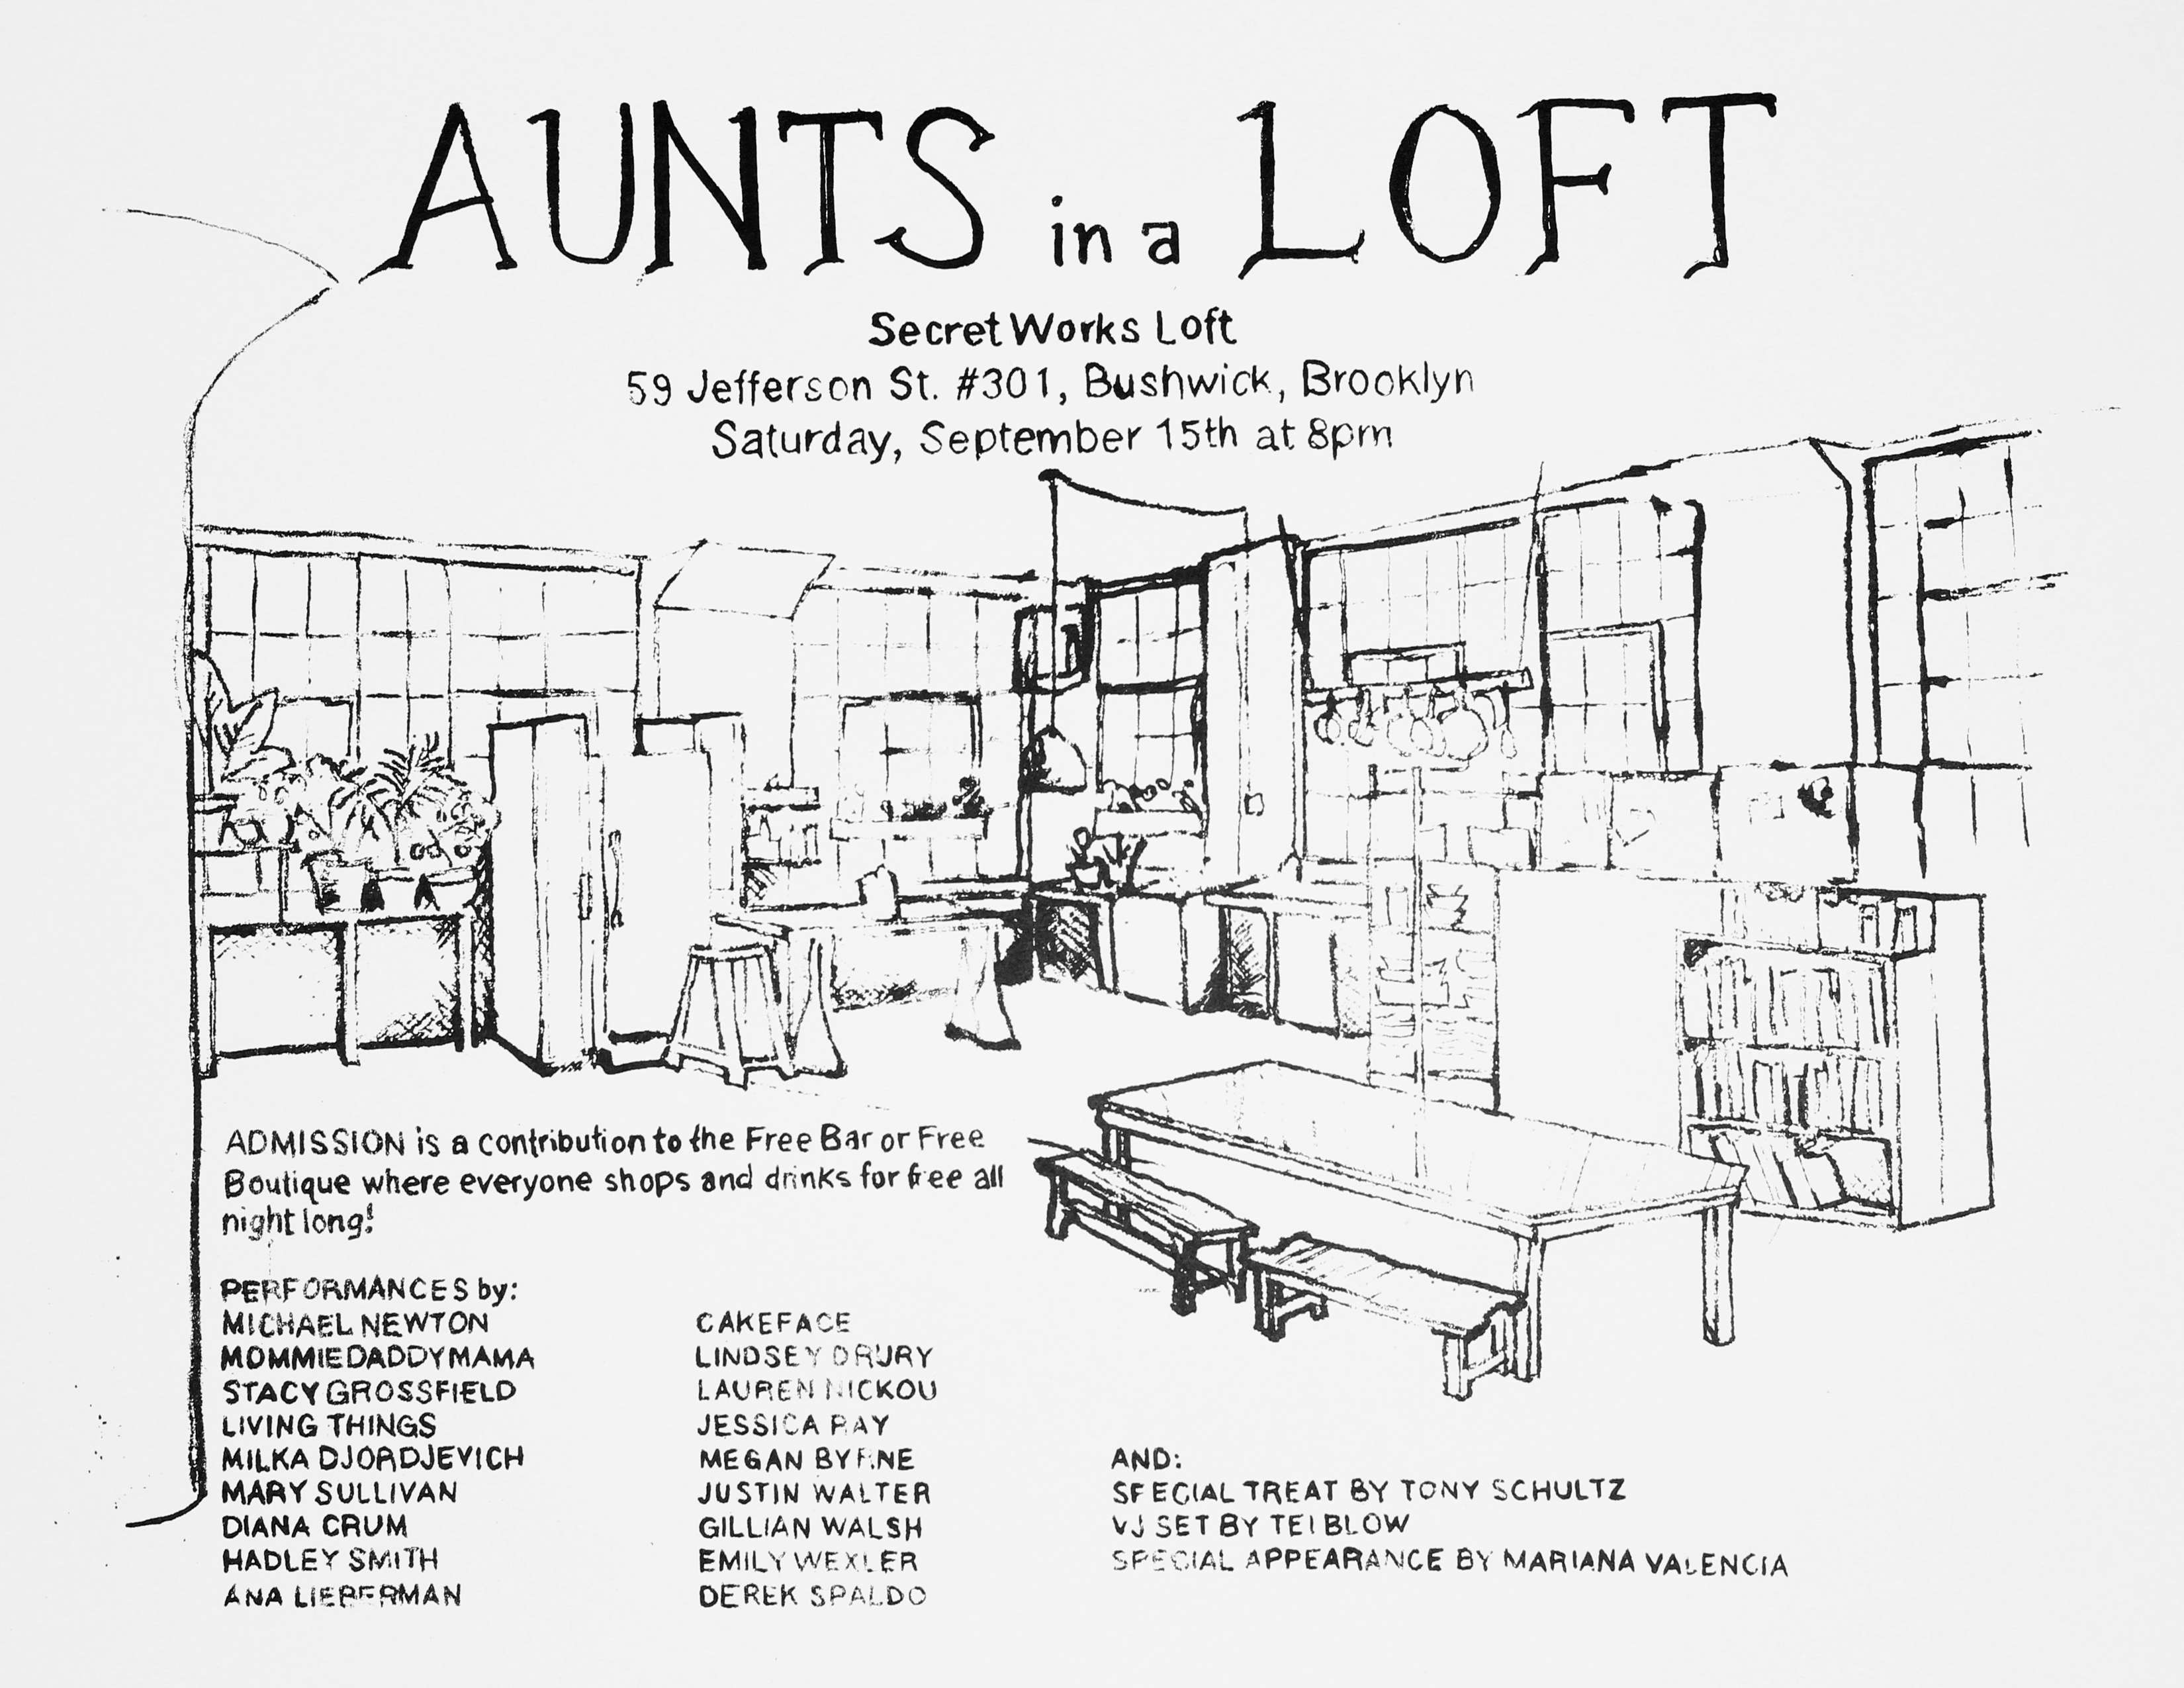 AUNTS in a Loft